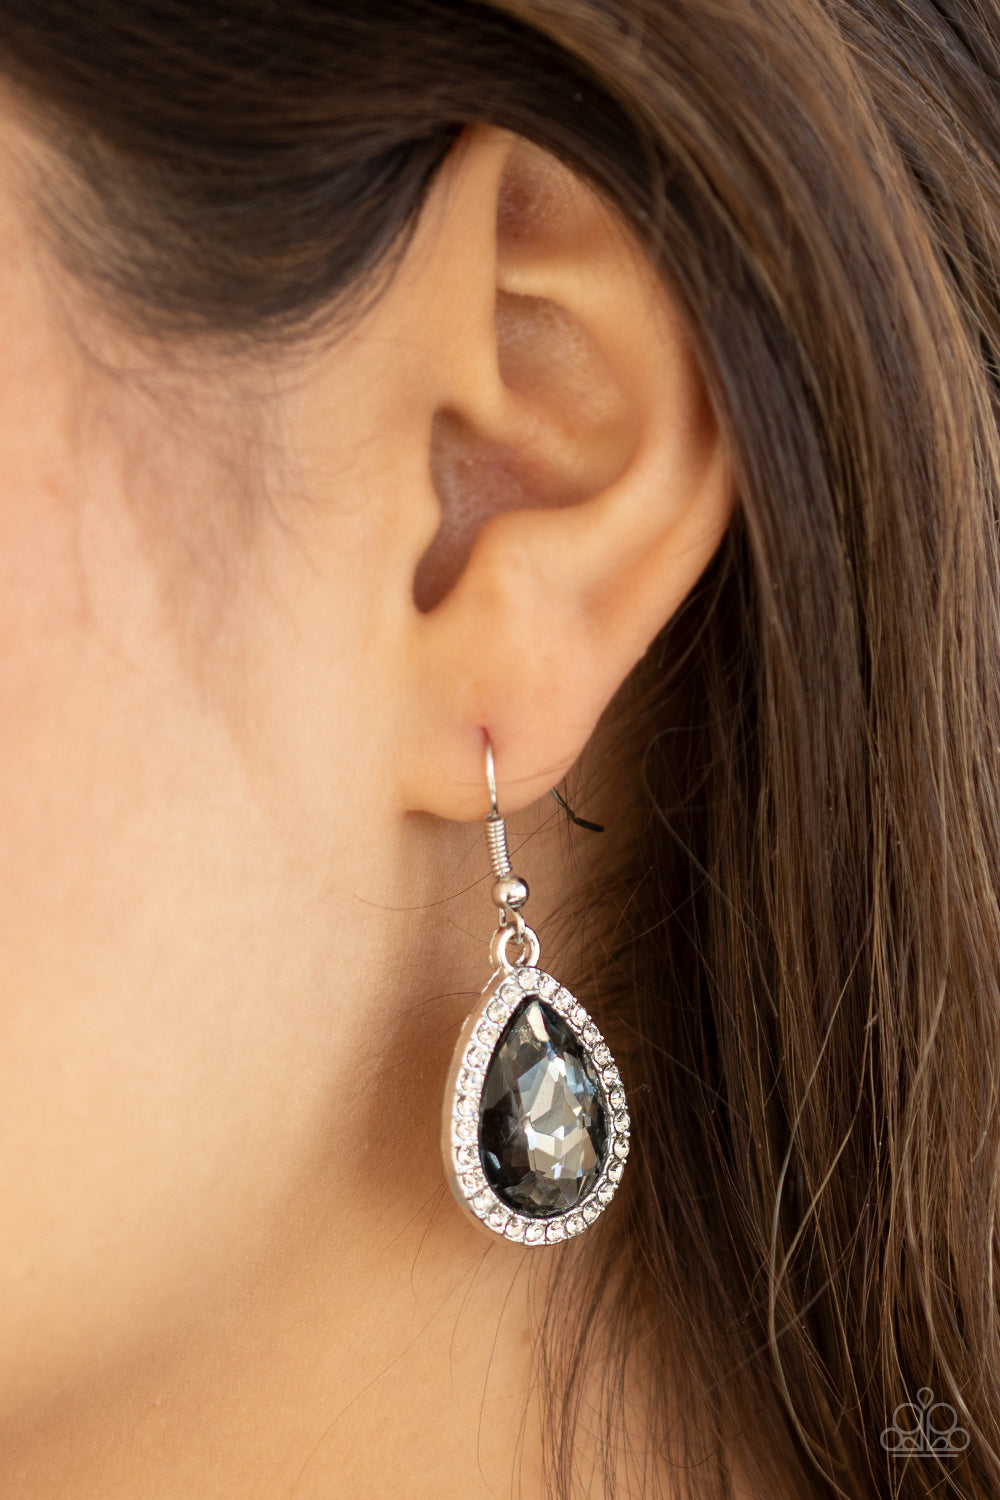 Dripping With Drama - Silver Earrings - Paparazzi Accessories